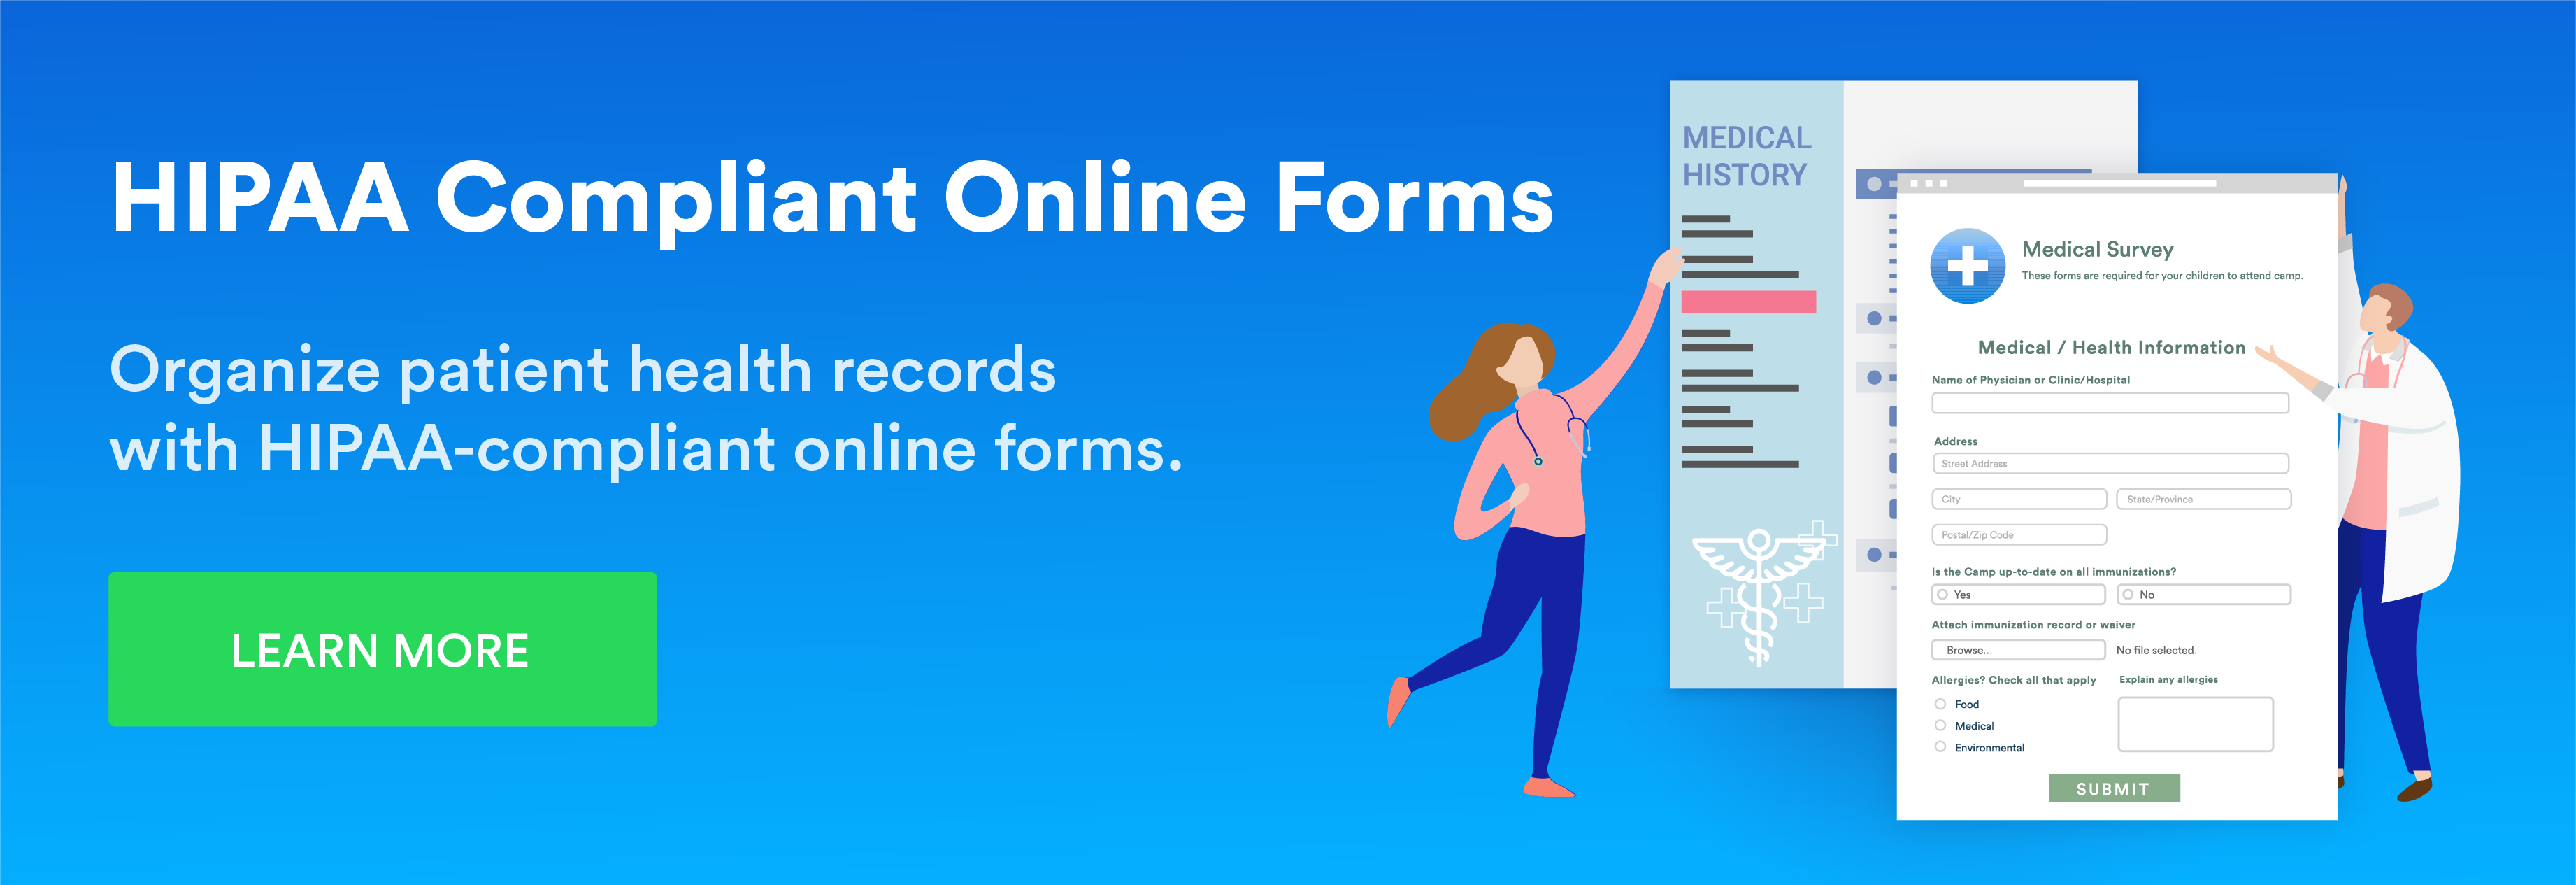 Organize patient health records with HIPAA-compliant online forms.